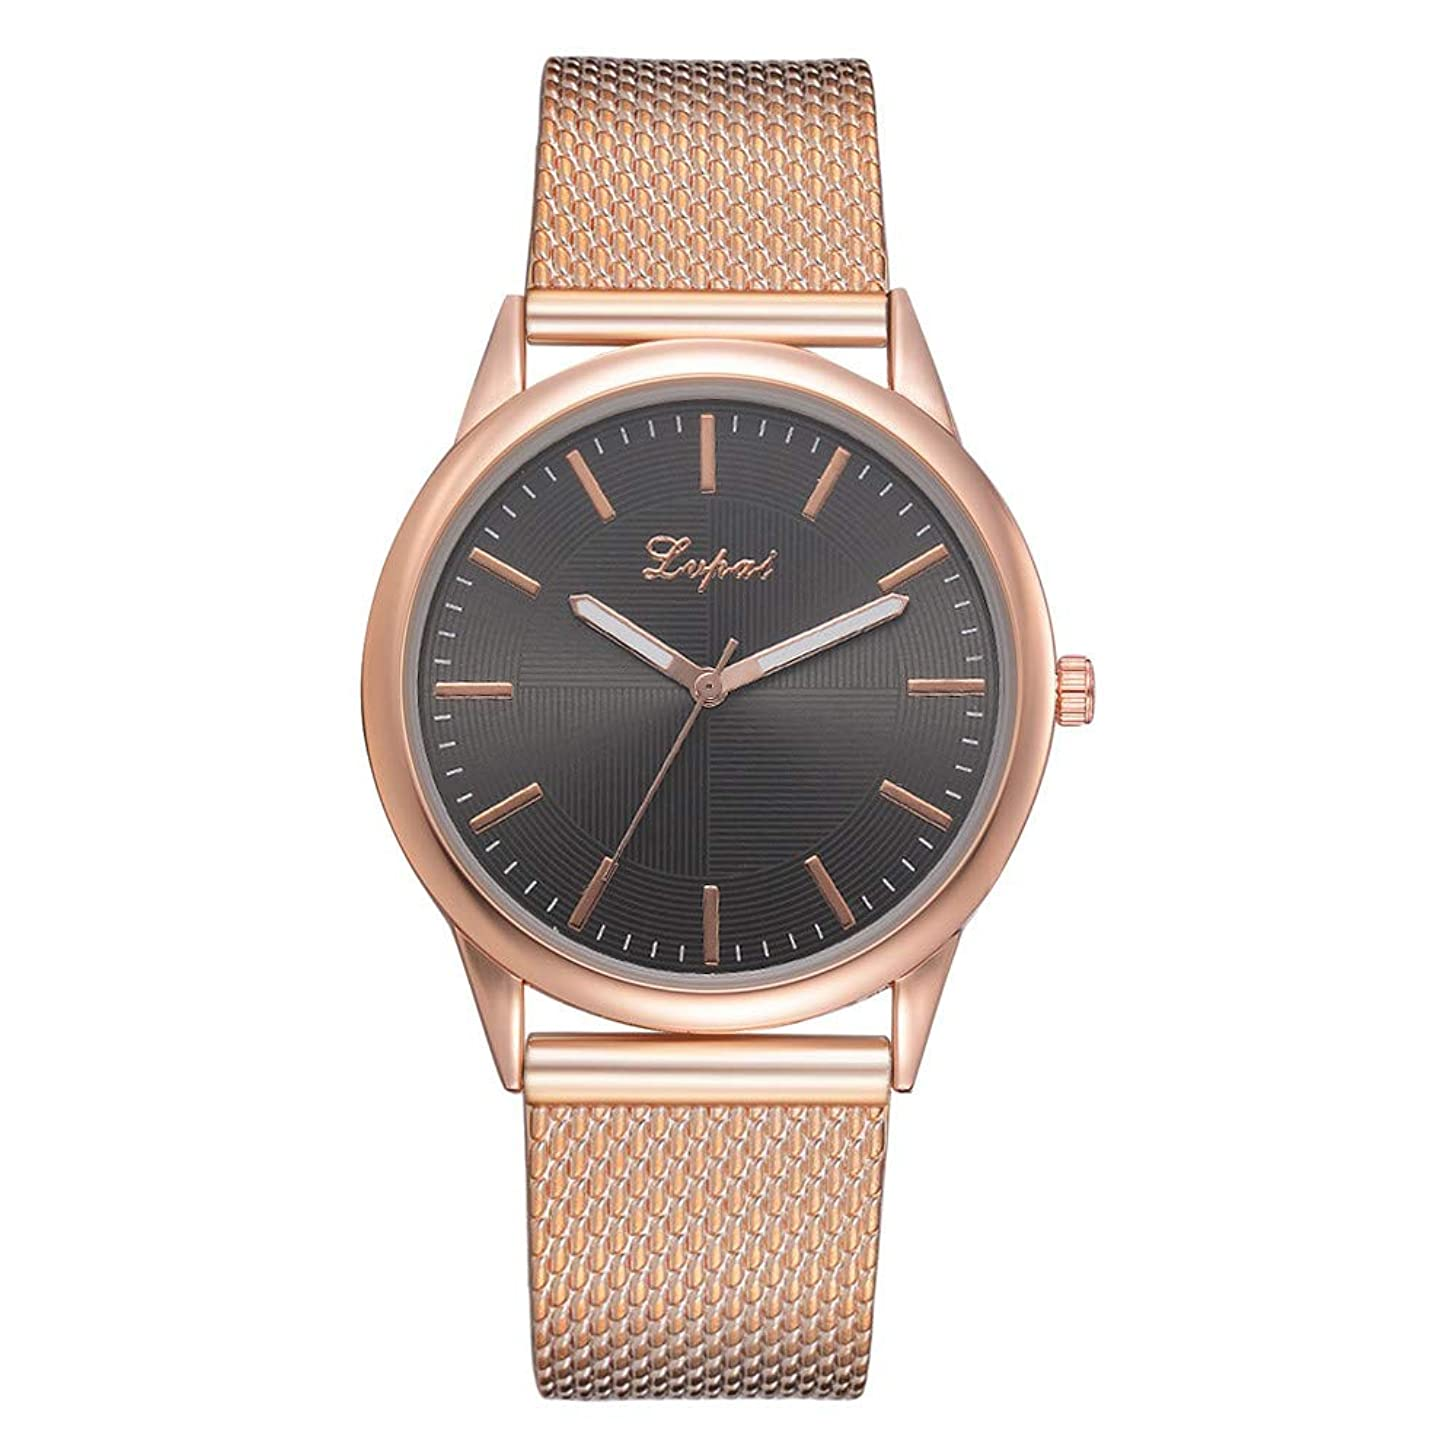 Women Quartz Watches,Fudule Analog Wrist Watches for Women with Stainless Steel Band Ladies Dress Watch Clearance